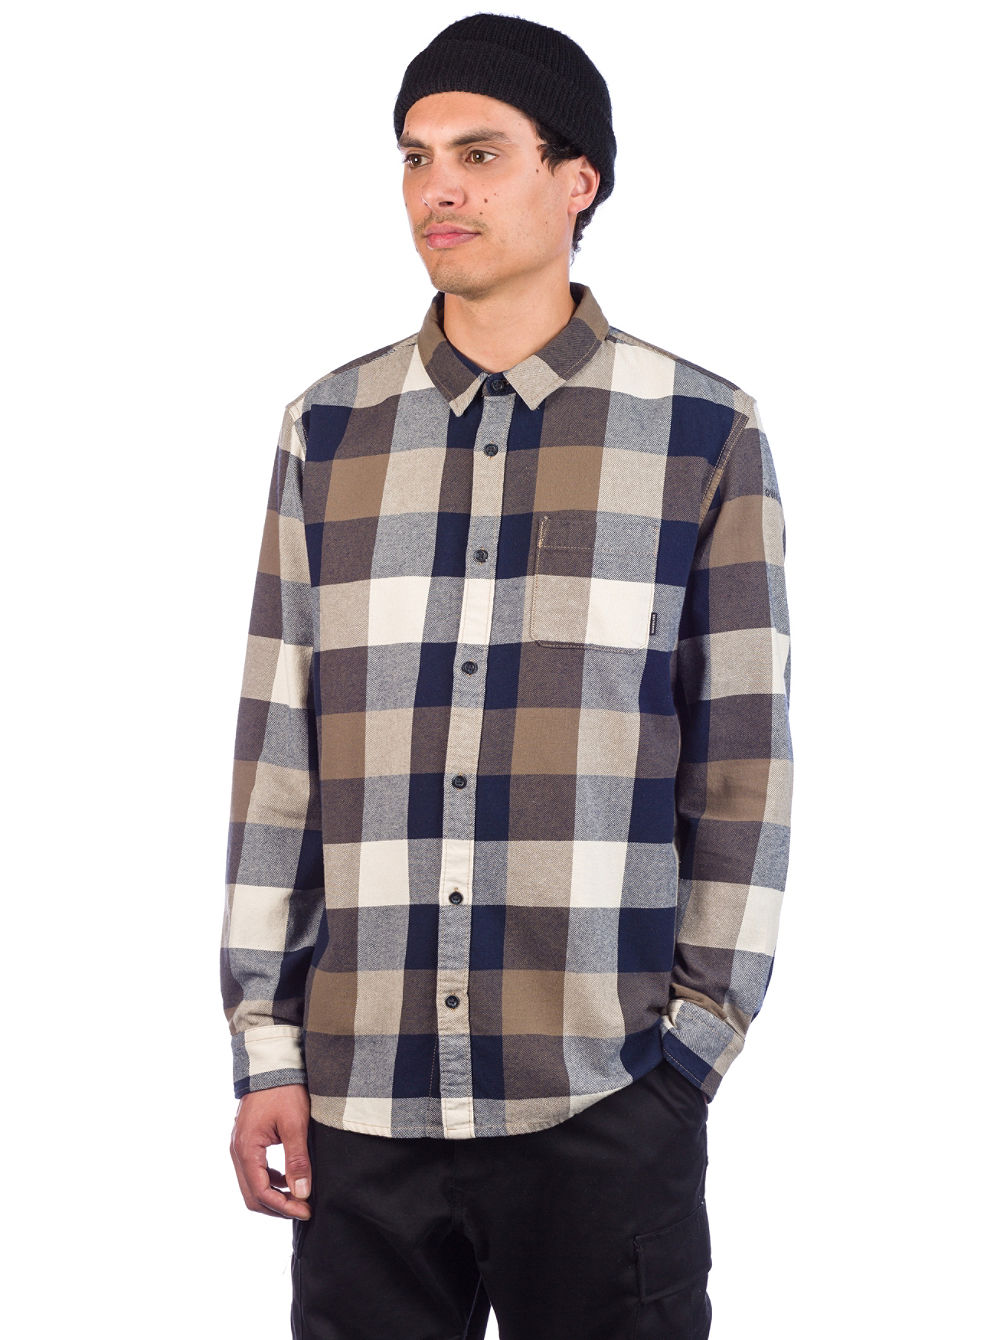 Motherfly Flannel Tricko